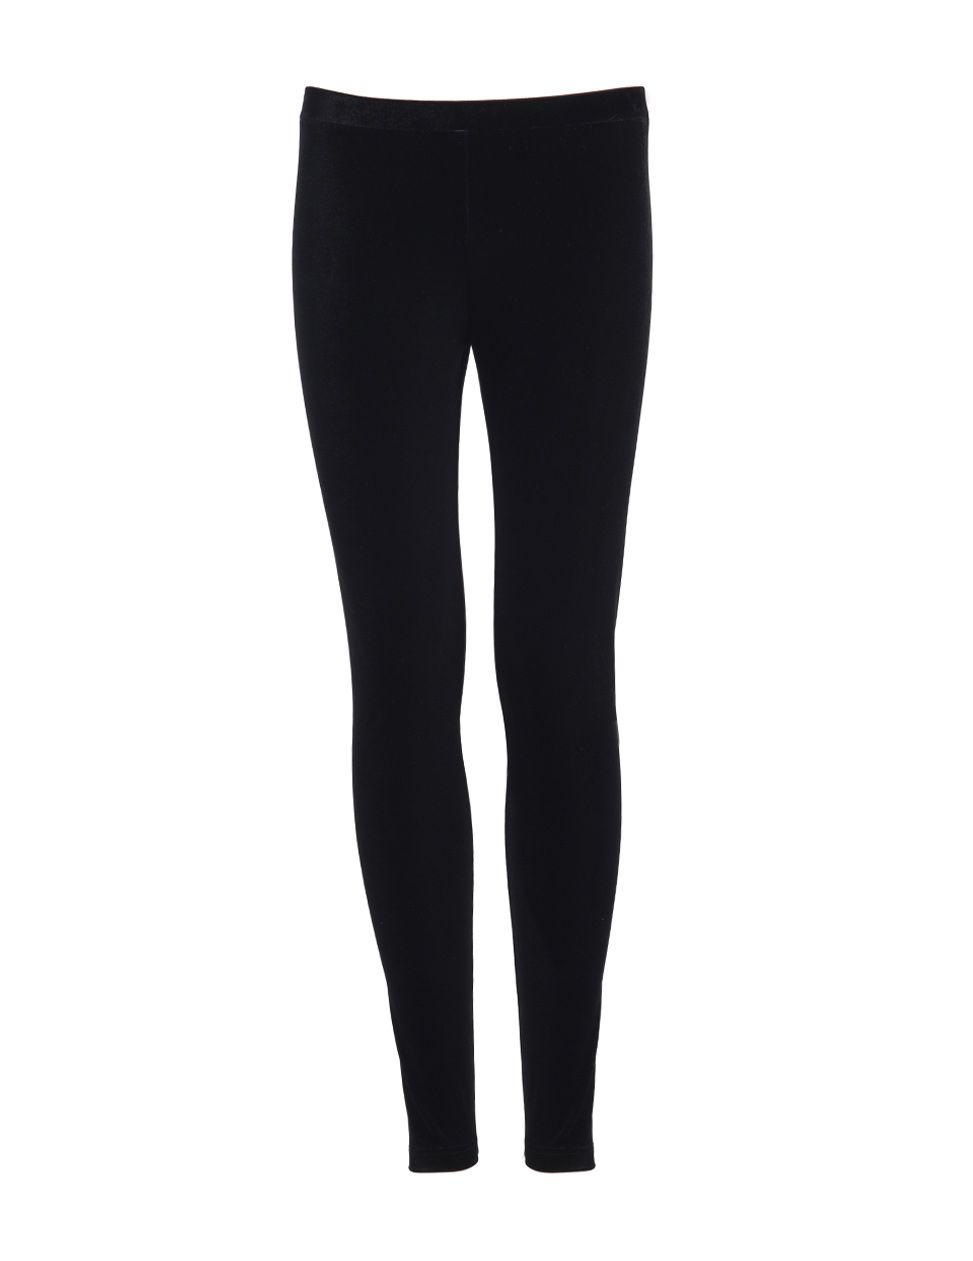 Gemma side panel leggings